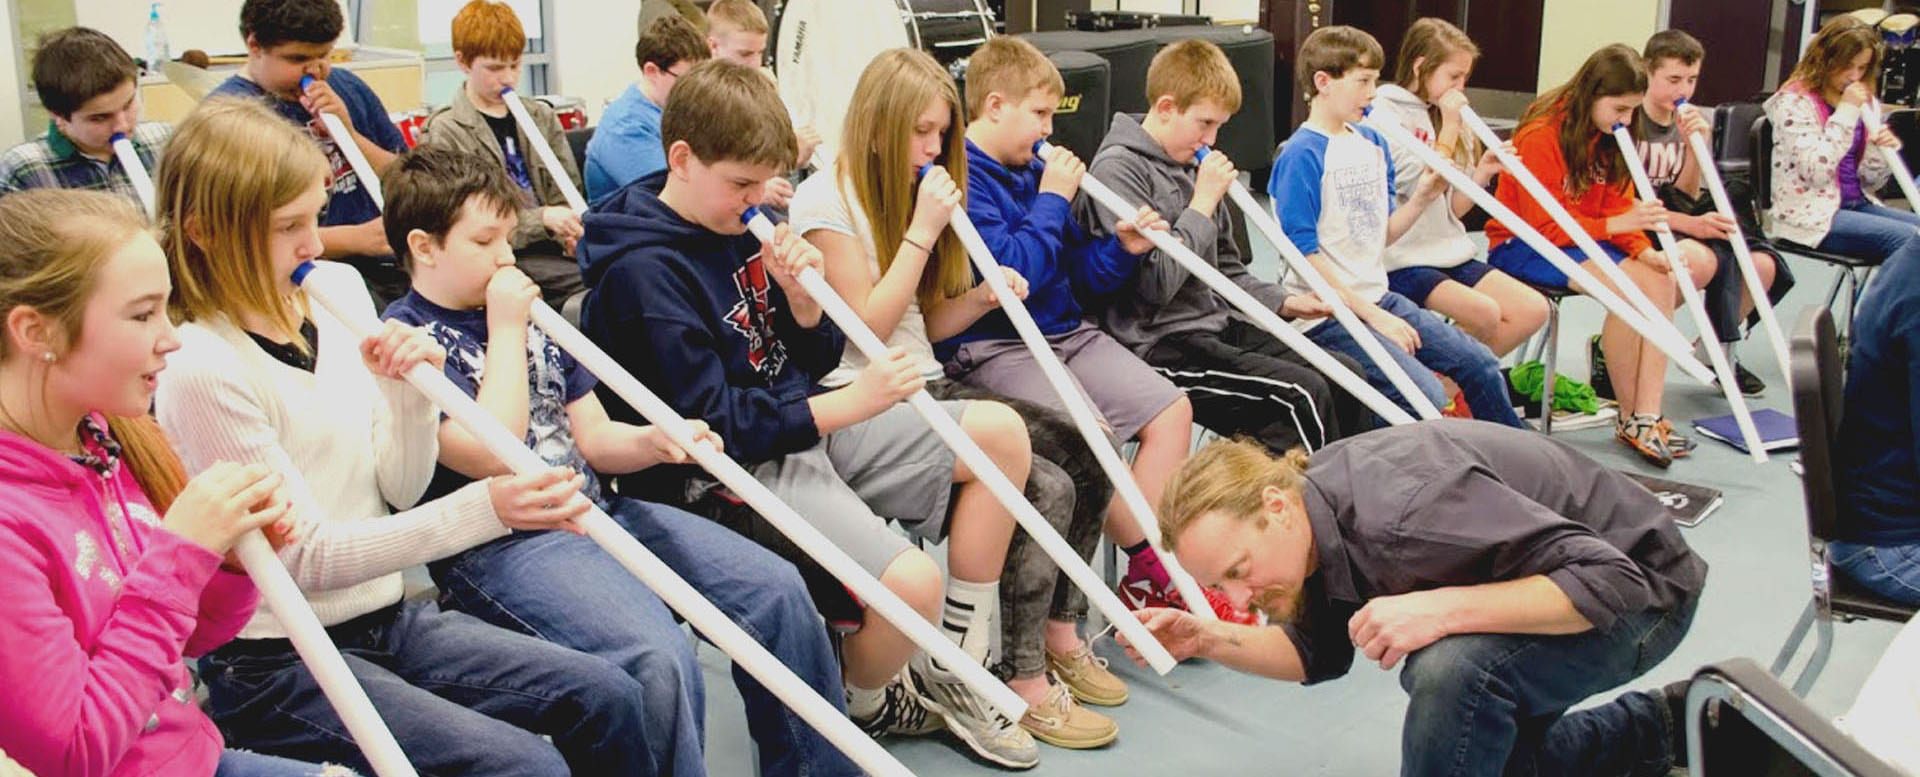 From the Liverpool Public Library: Didgeridoo Down Under brings puppetry, storytelling to LPL